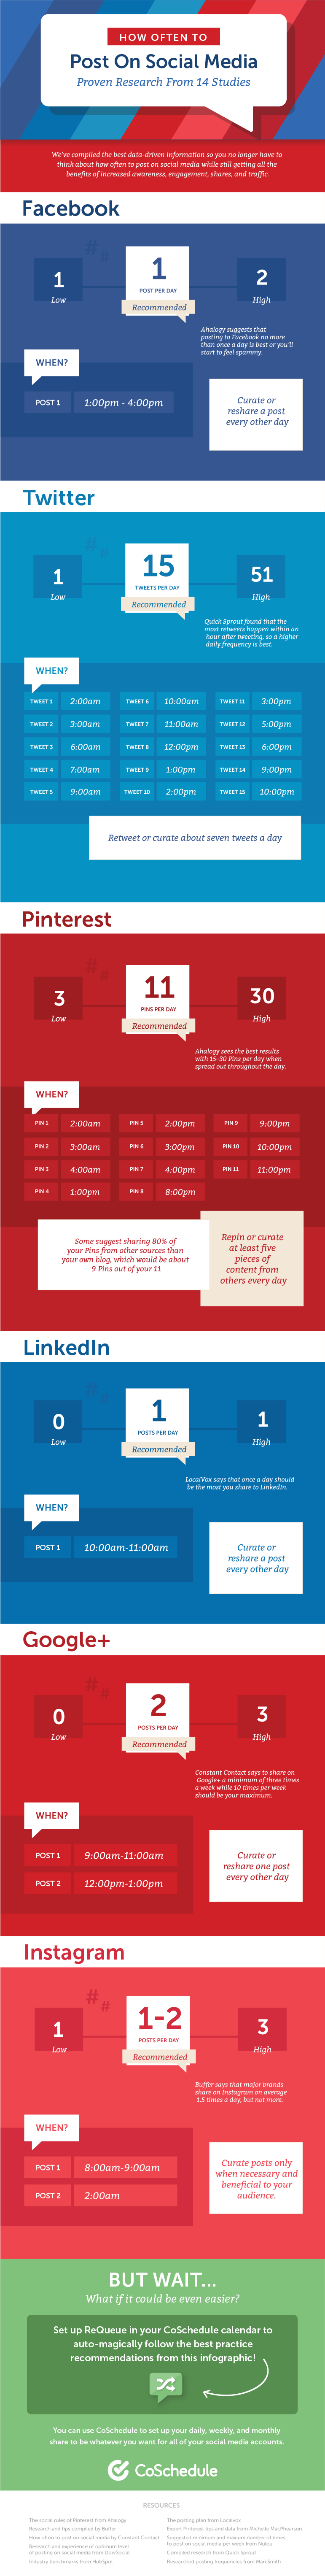 how-often-to-post-on-social-media-infographic